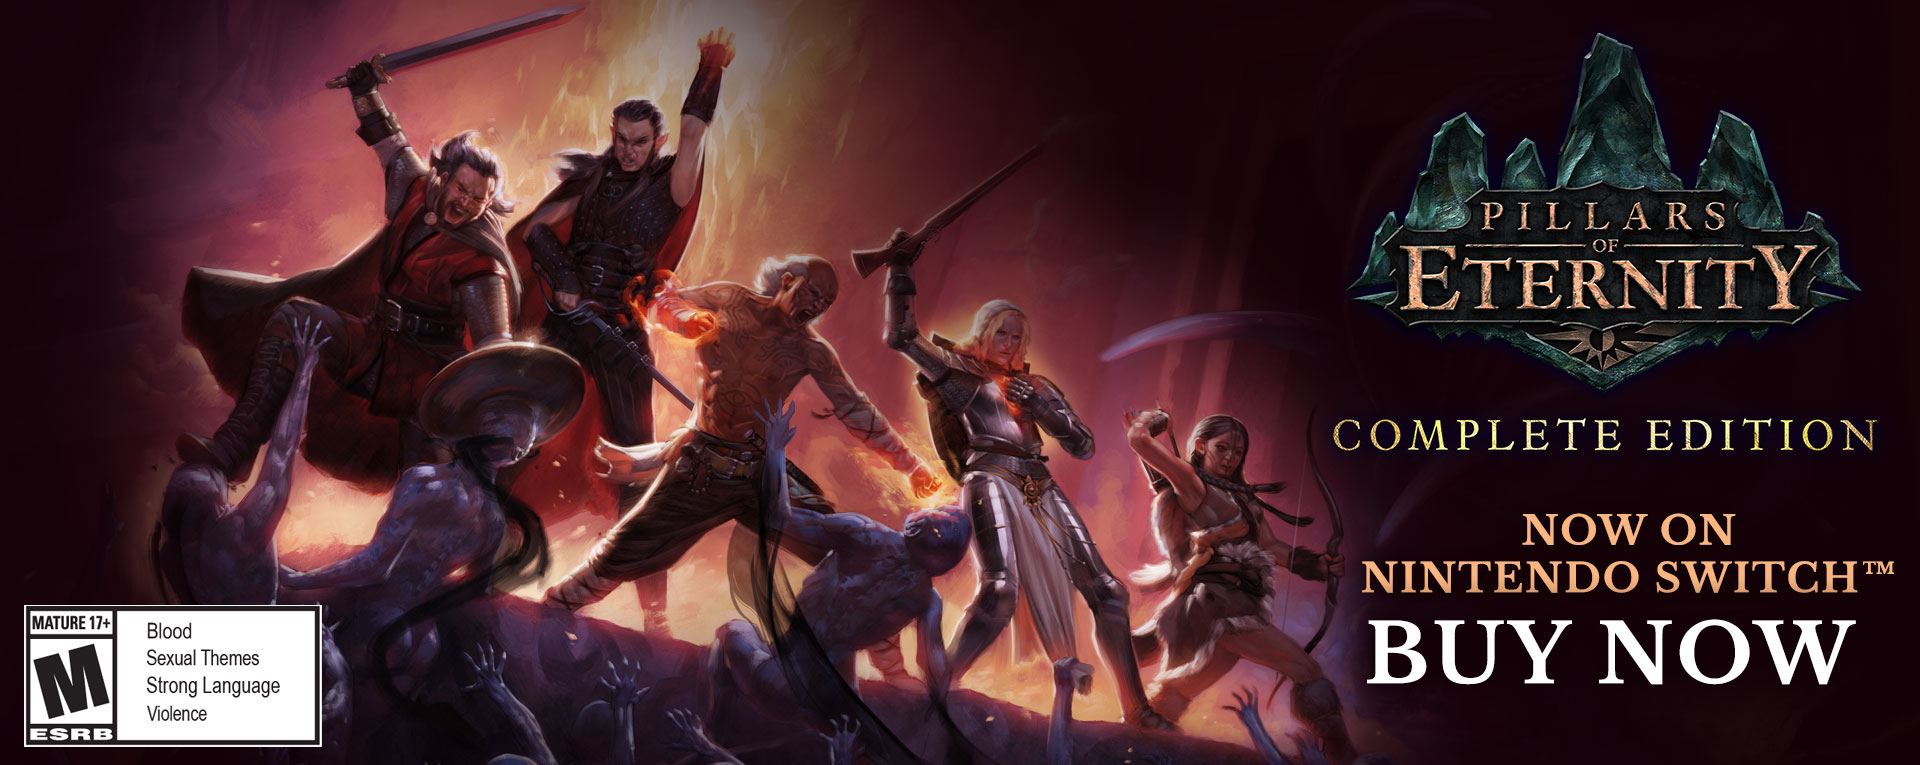 Versus Evil Blog: Pillars of Eternity Patch 2.55.09